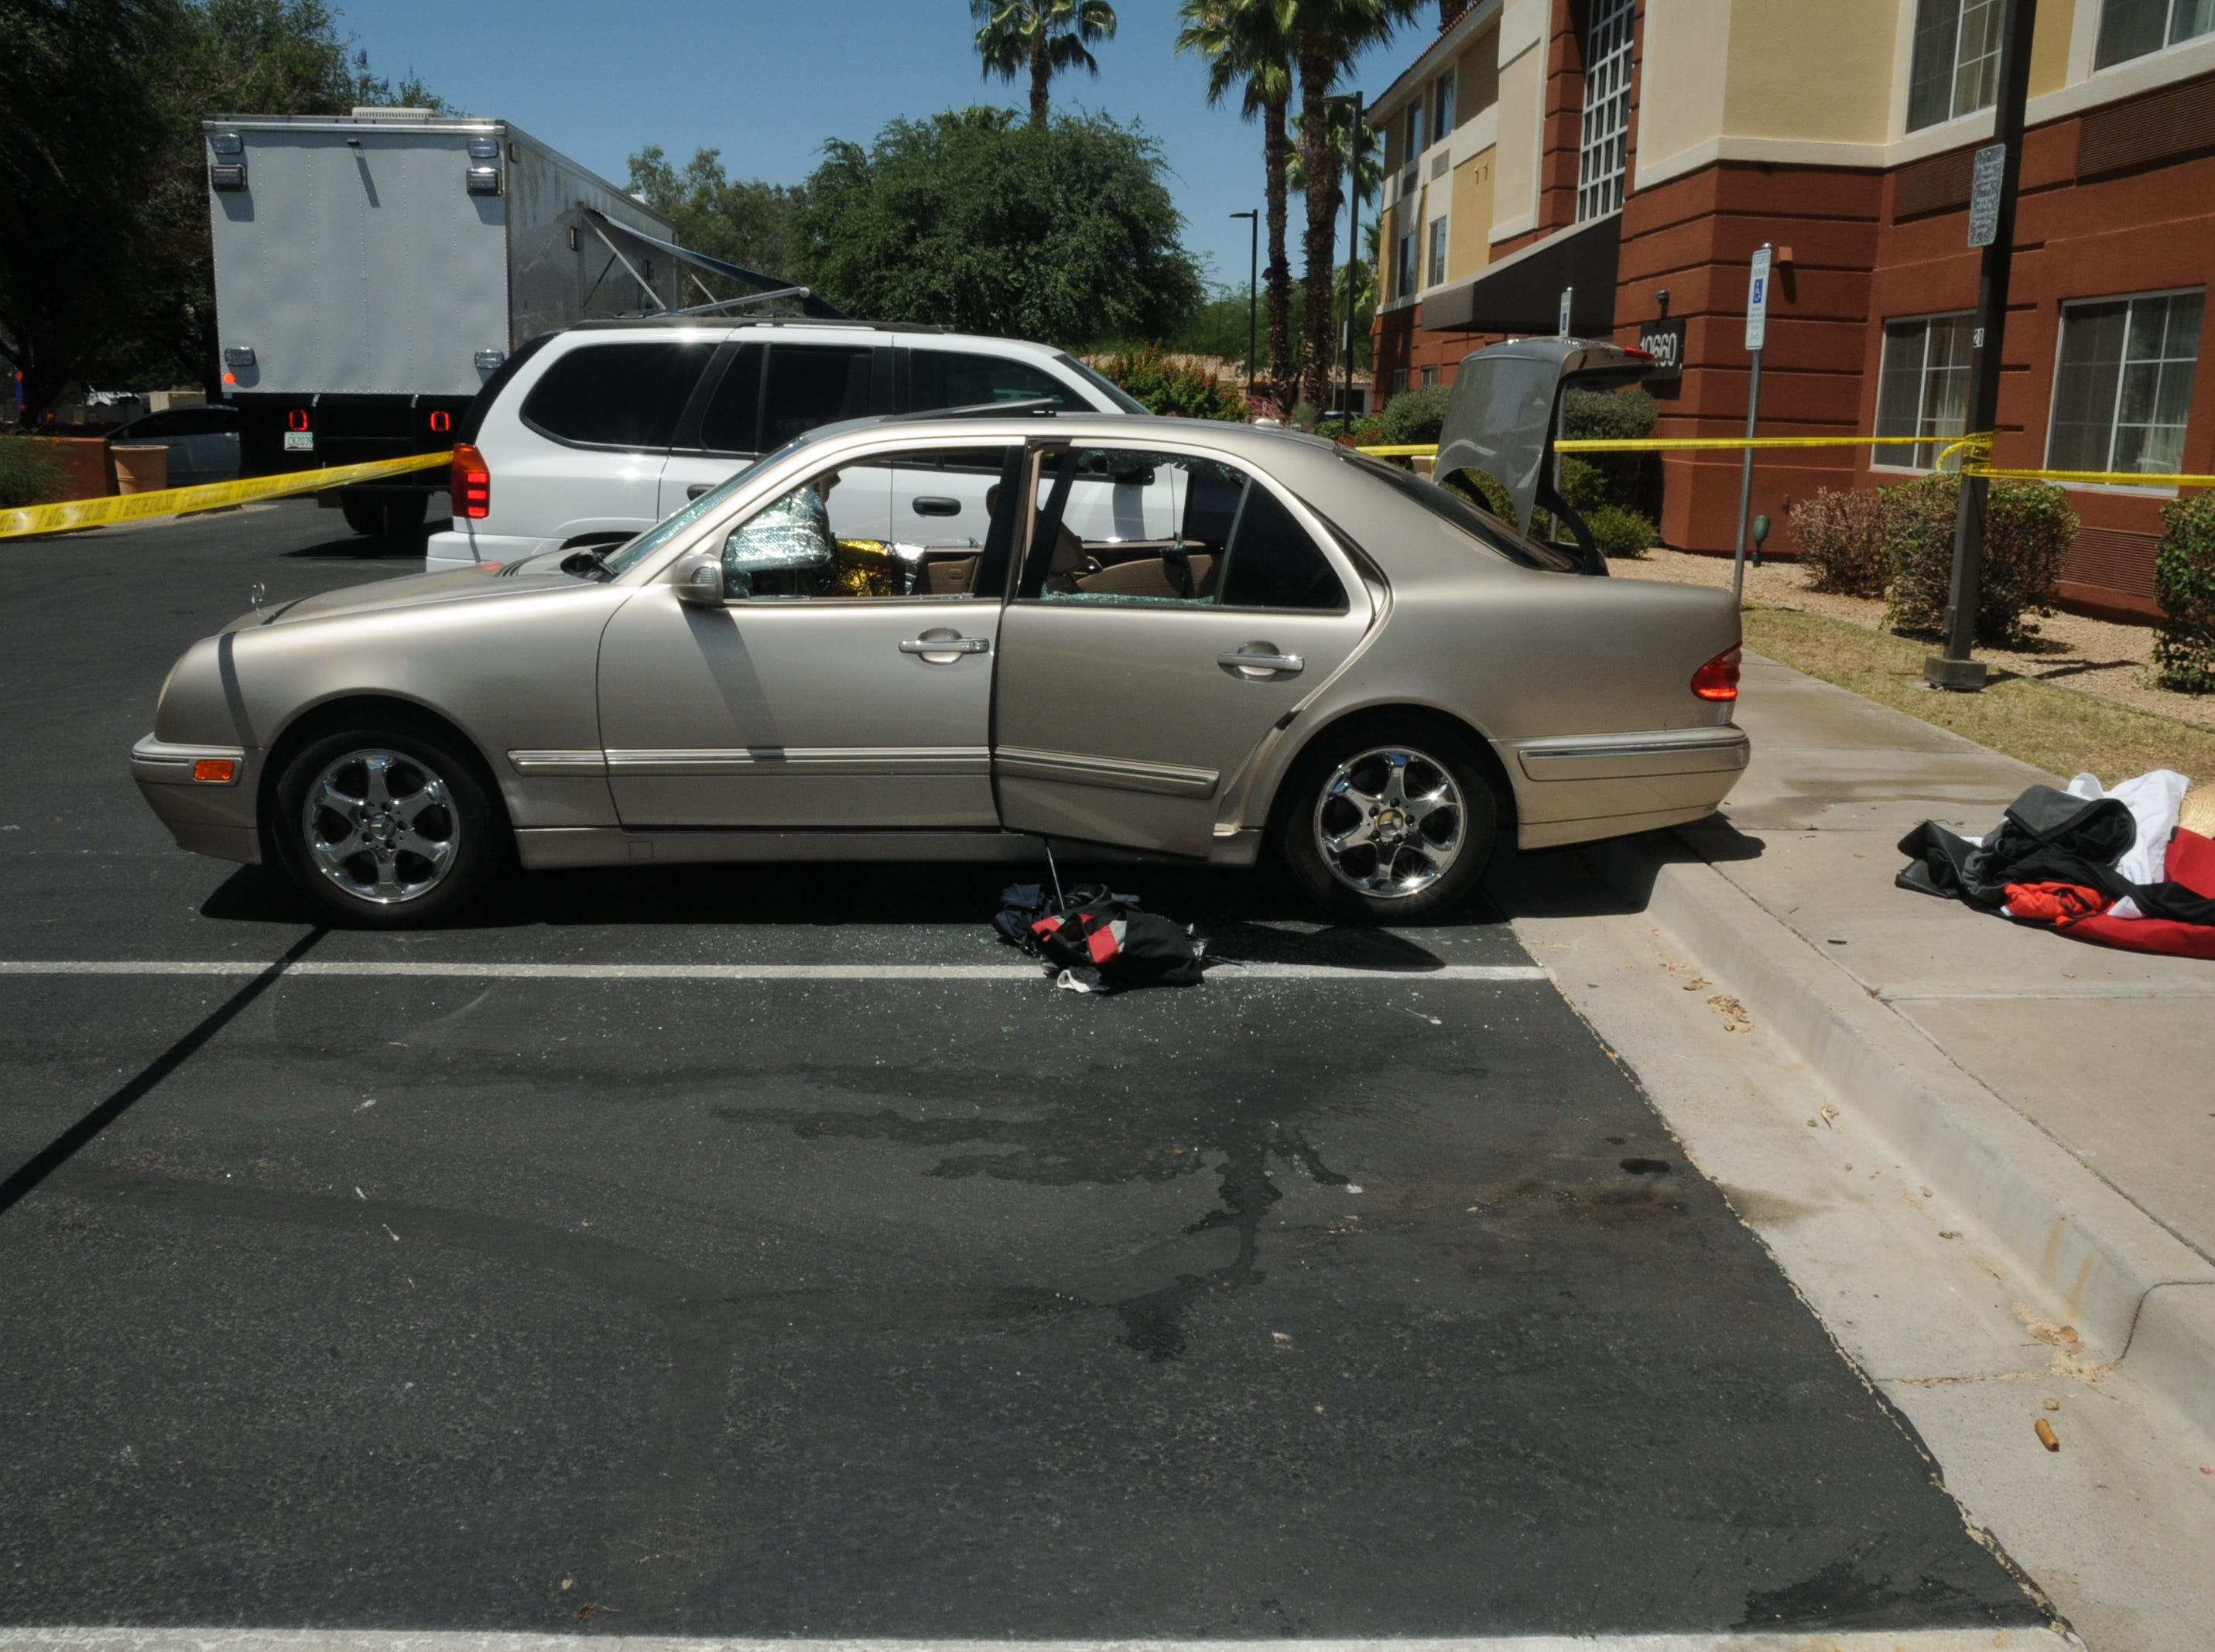 Scottsdale Police Department photo of Dwight Lamon Jones' car outside his Scottsdale Extended Stay hotel room near 69th Street and Shea Boulevard. After a bitter divorce and failed years-long custody battle for his son, Jones went on a four-day shooting spree from May 31 to June 3, 2018, that left six people dead, before taking his own life.